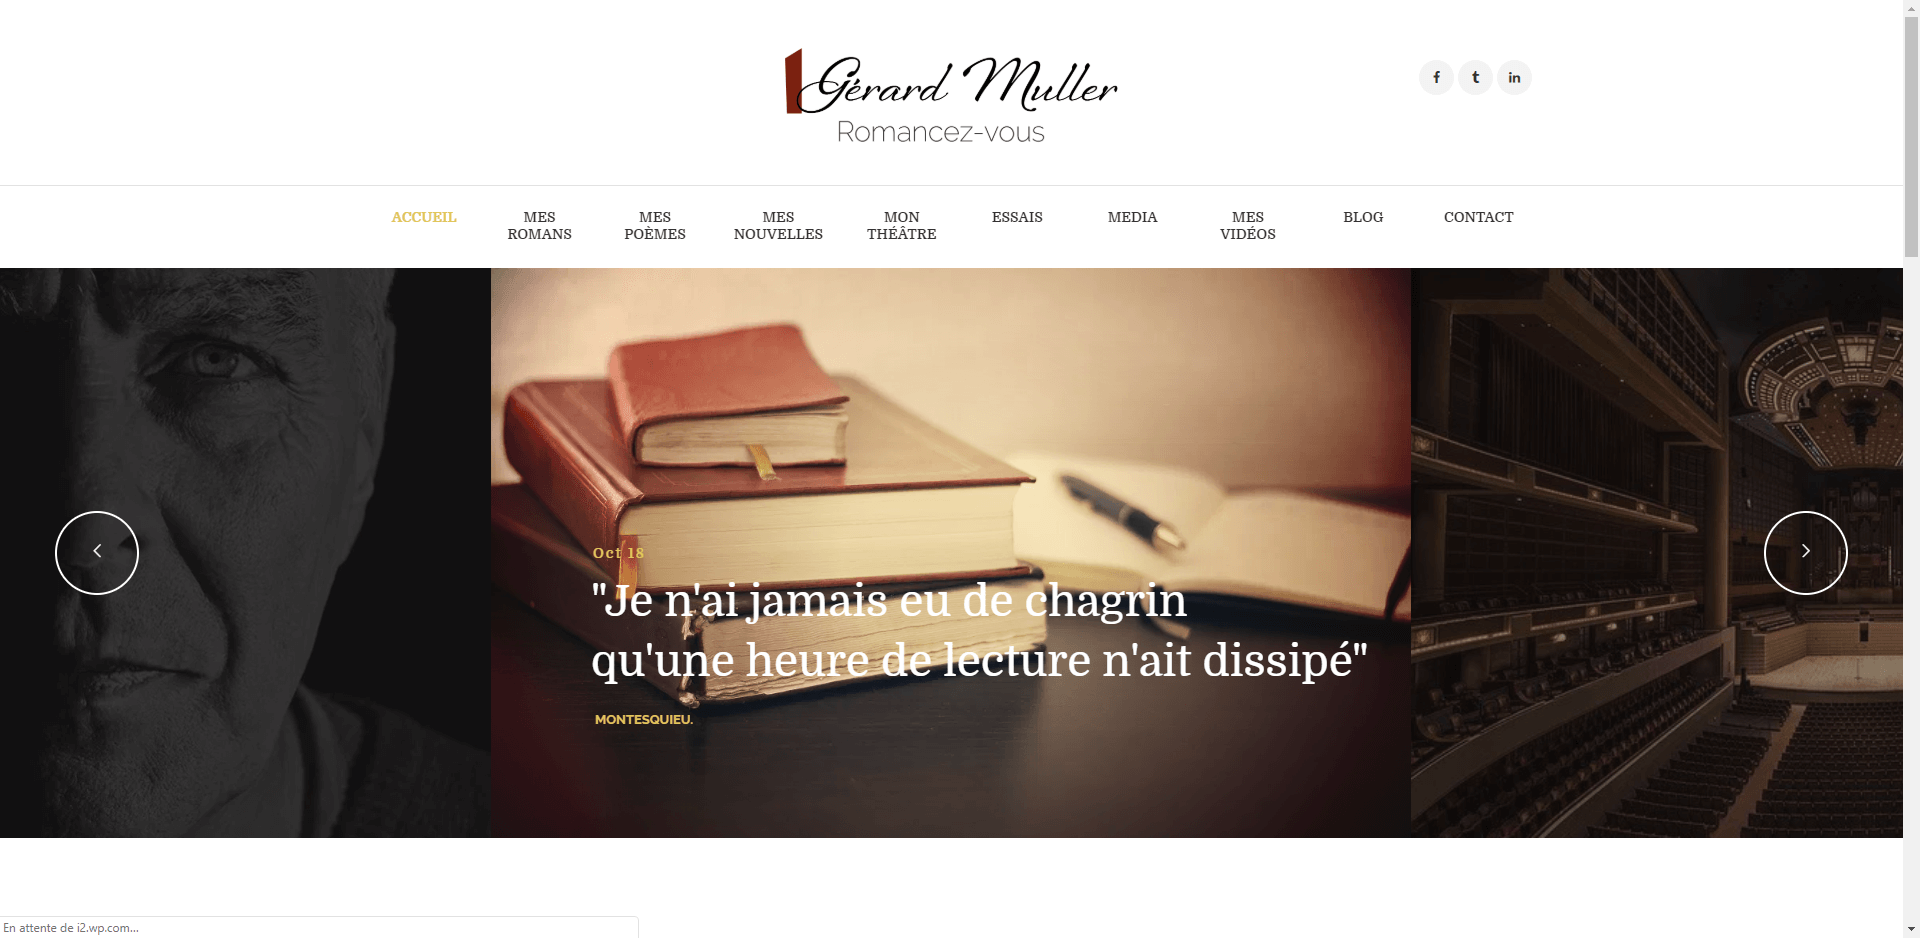 Gerardmuller-website